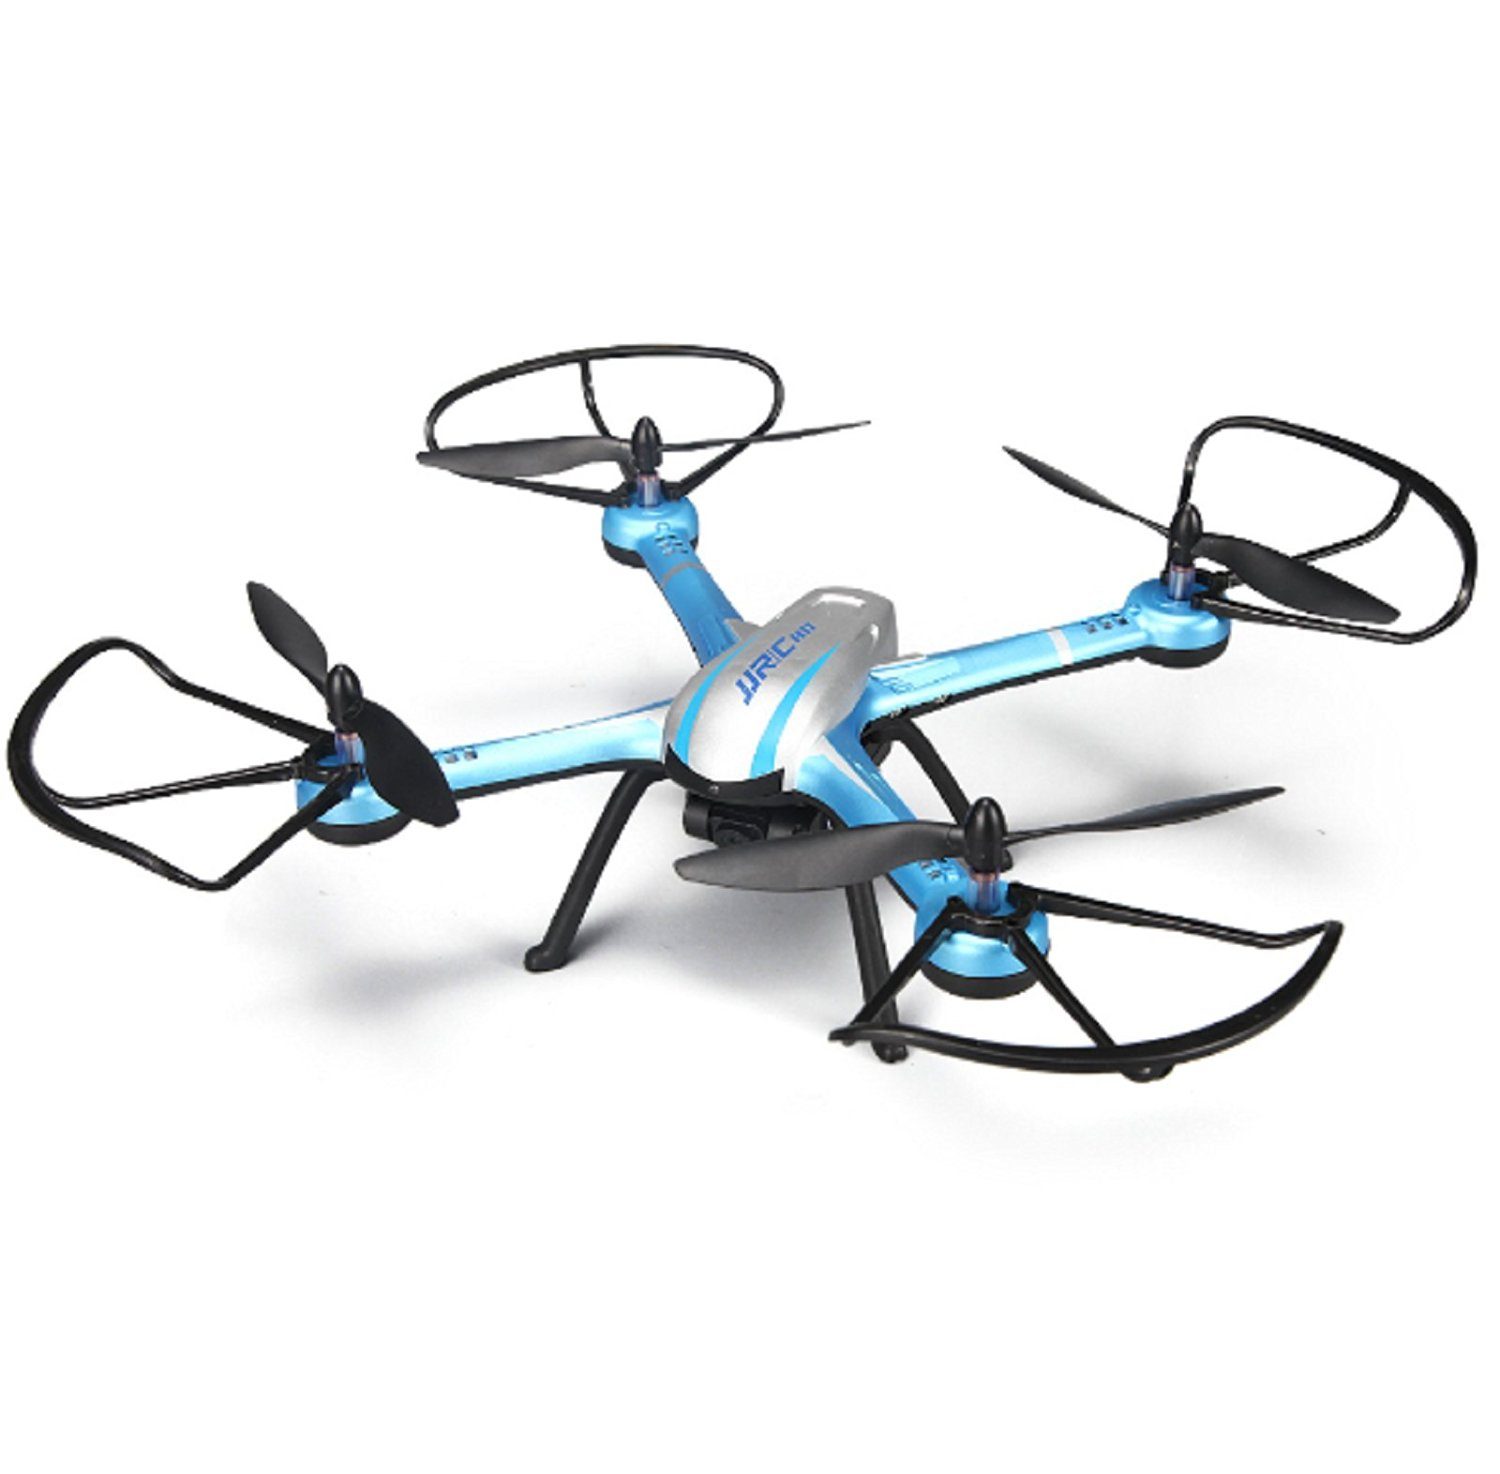 NEW ARRIVAL!!! Drone With 2.0MP HD Camera 2.4G 4CH 6Axis One Key Back RC Quadcopter RTF Remote Control Helicopter 3D Mode VS H12C H6C (Blue Color)